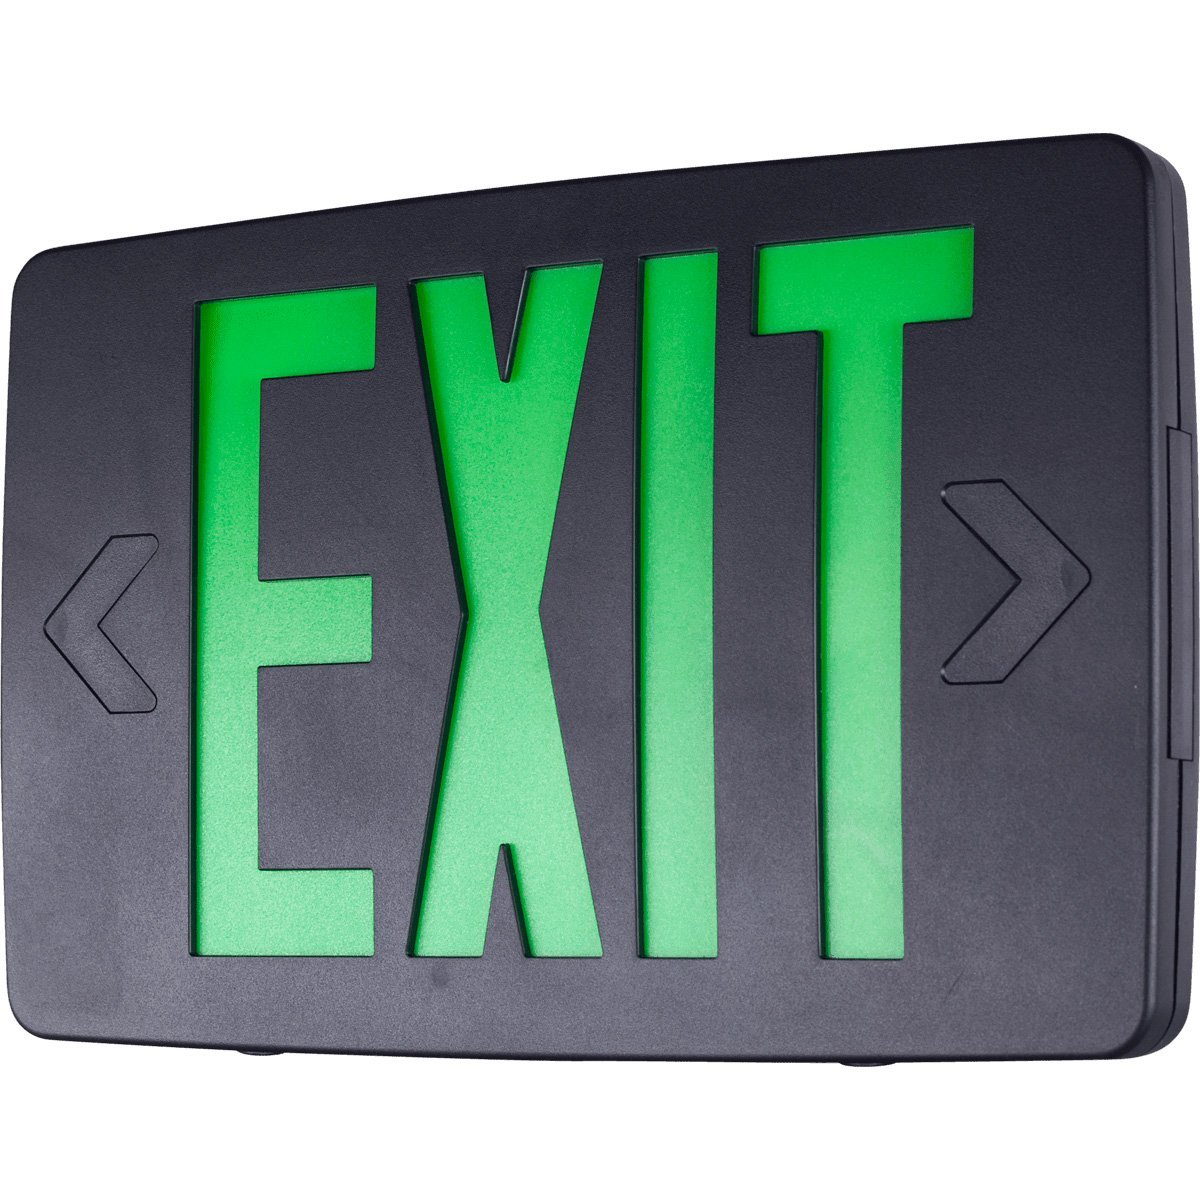 Thin Thermoplastic Exit Sign Series : EETX